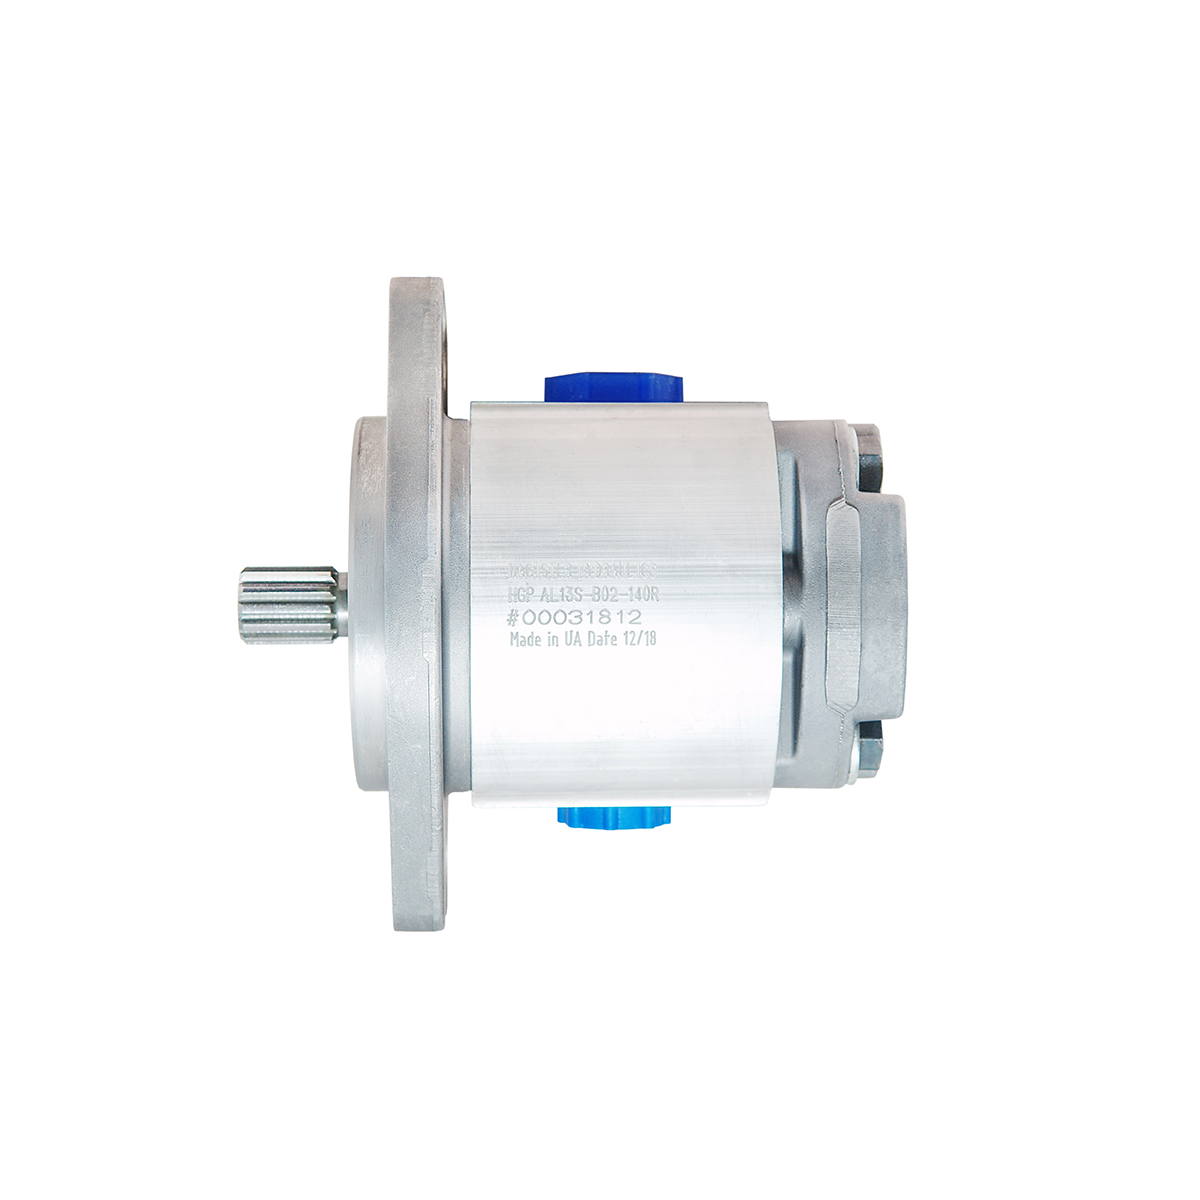 0.27 CID hydraulic gear pump, 9 tooth spline shaft clockwise gear pump | Magister Hydraulics